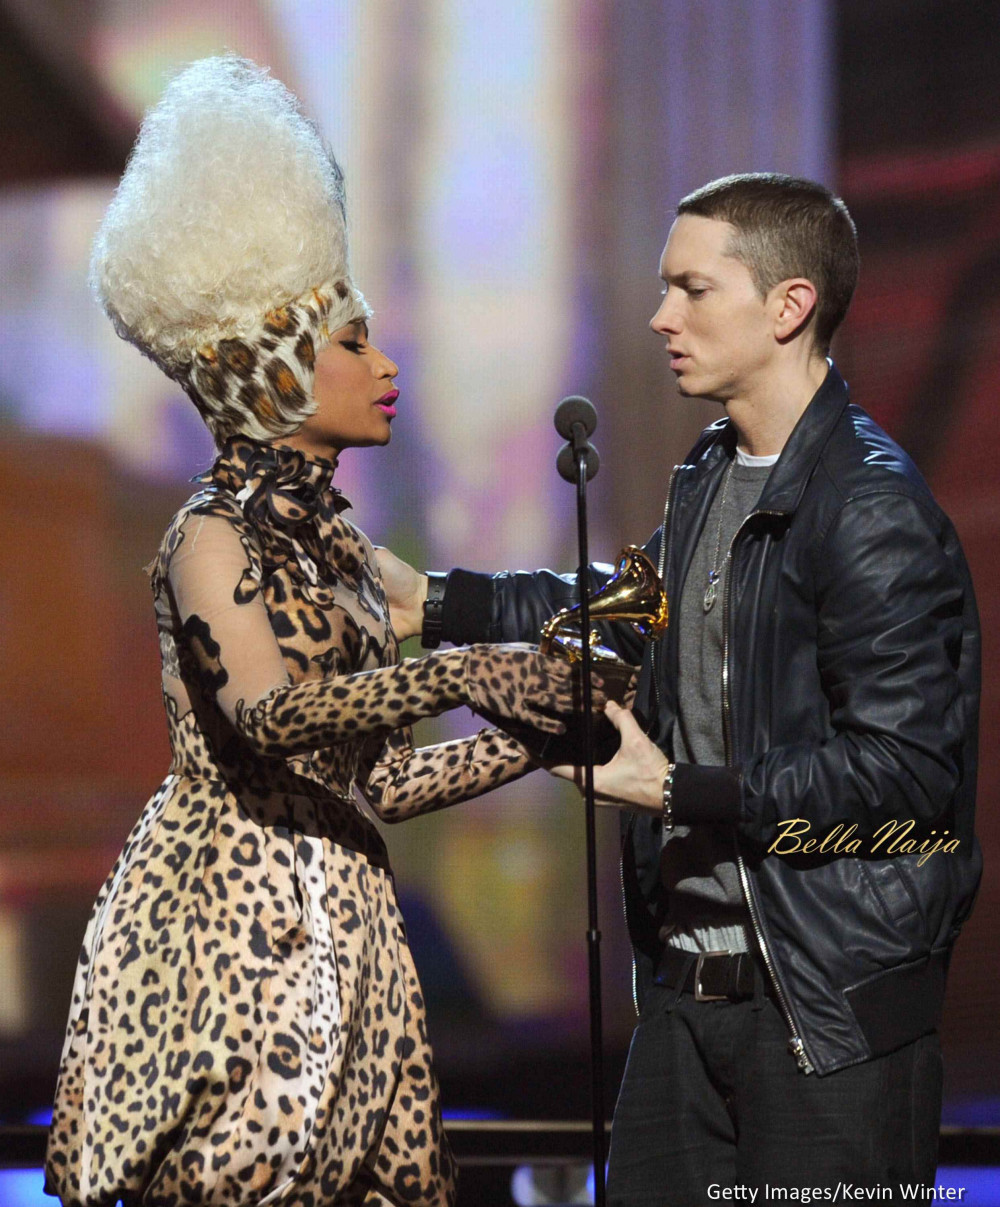 Nicki Minaj Alludes to Dating Eminem